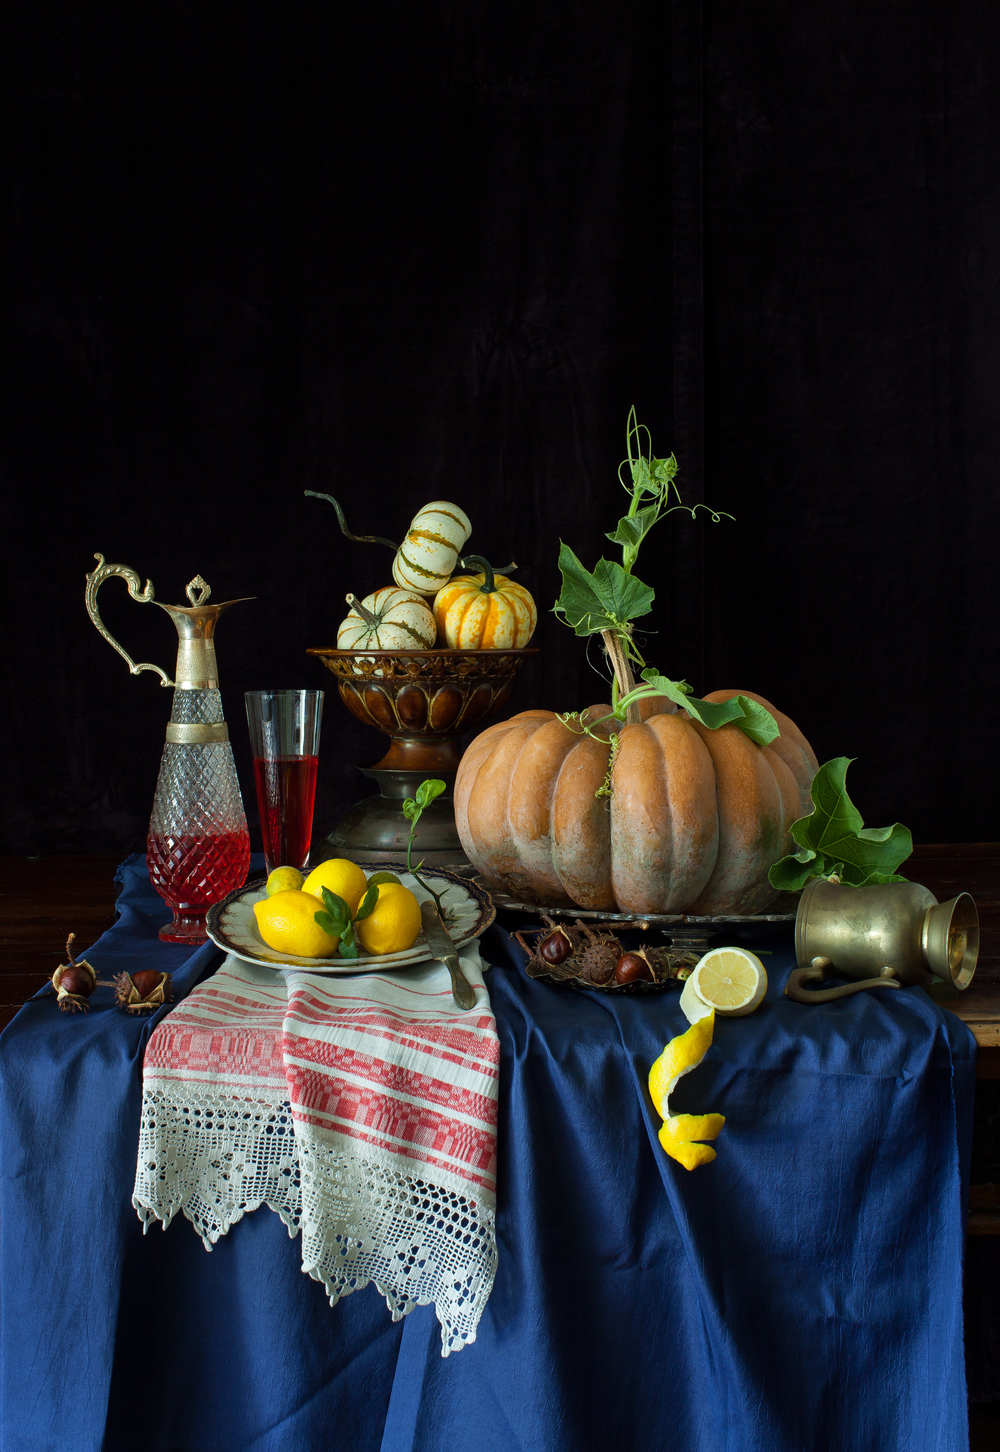 Magical Pumpkin Still Life 2013